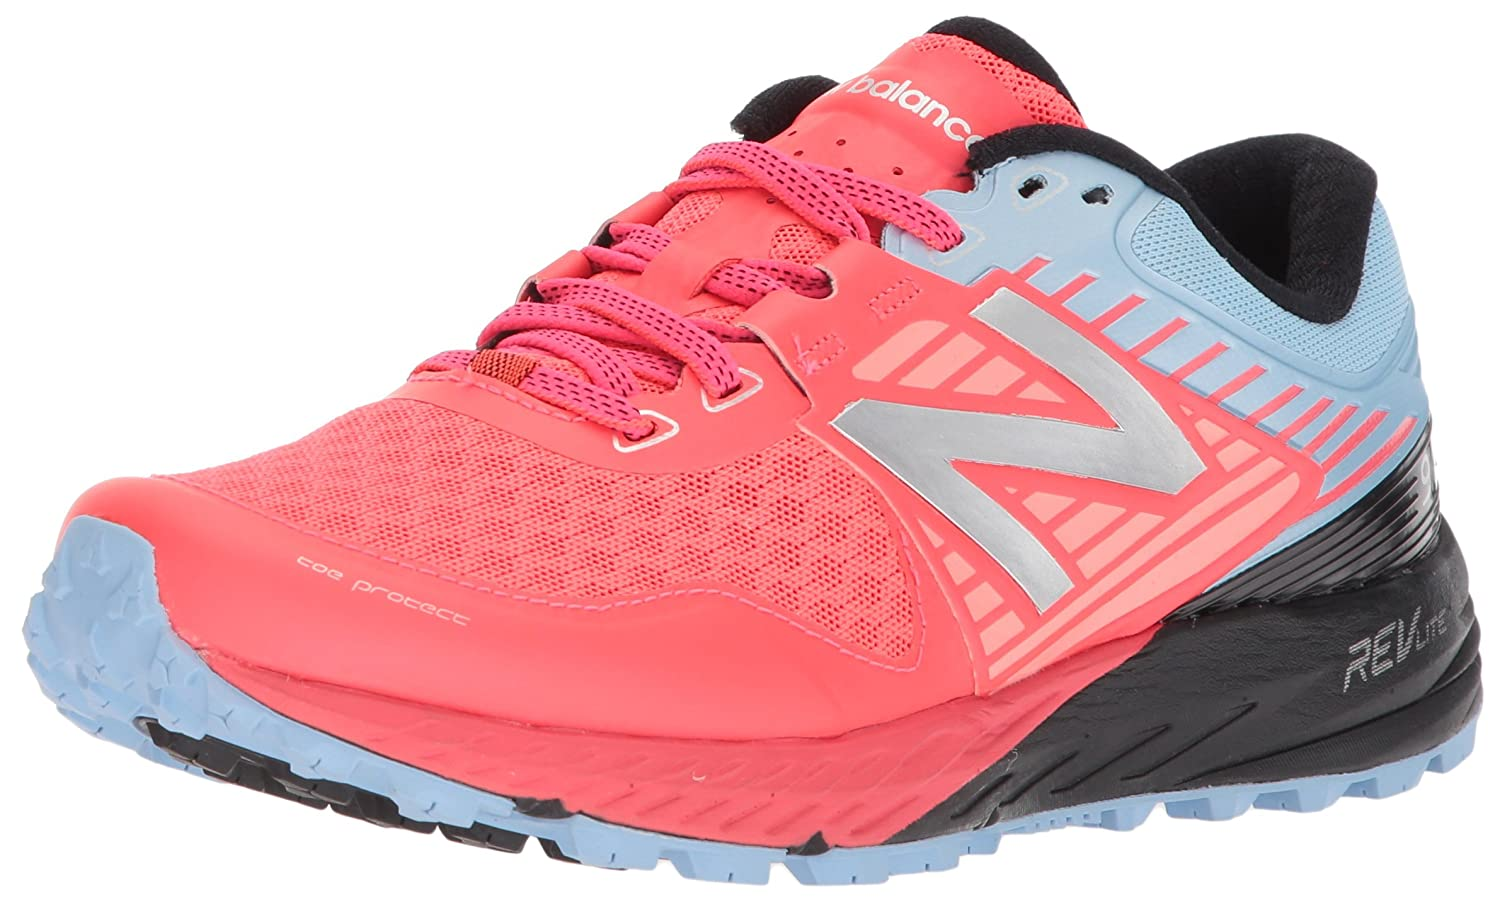 New Balance Women's 910 V4 Trail Running Shoe B06XRTX2TP 8.5 D US|Vivid Coral/Clear Sky